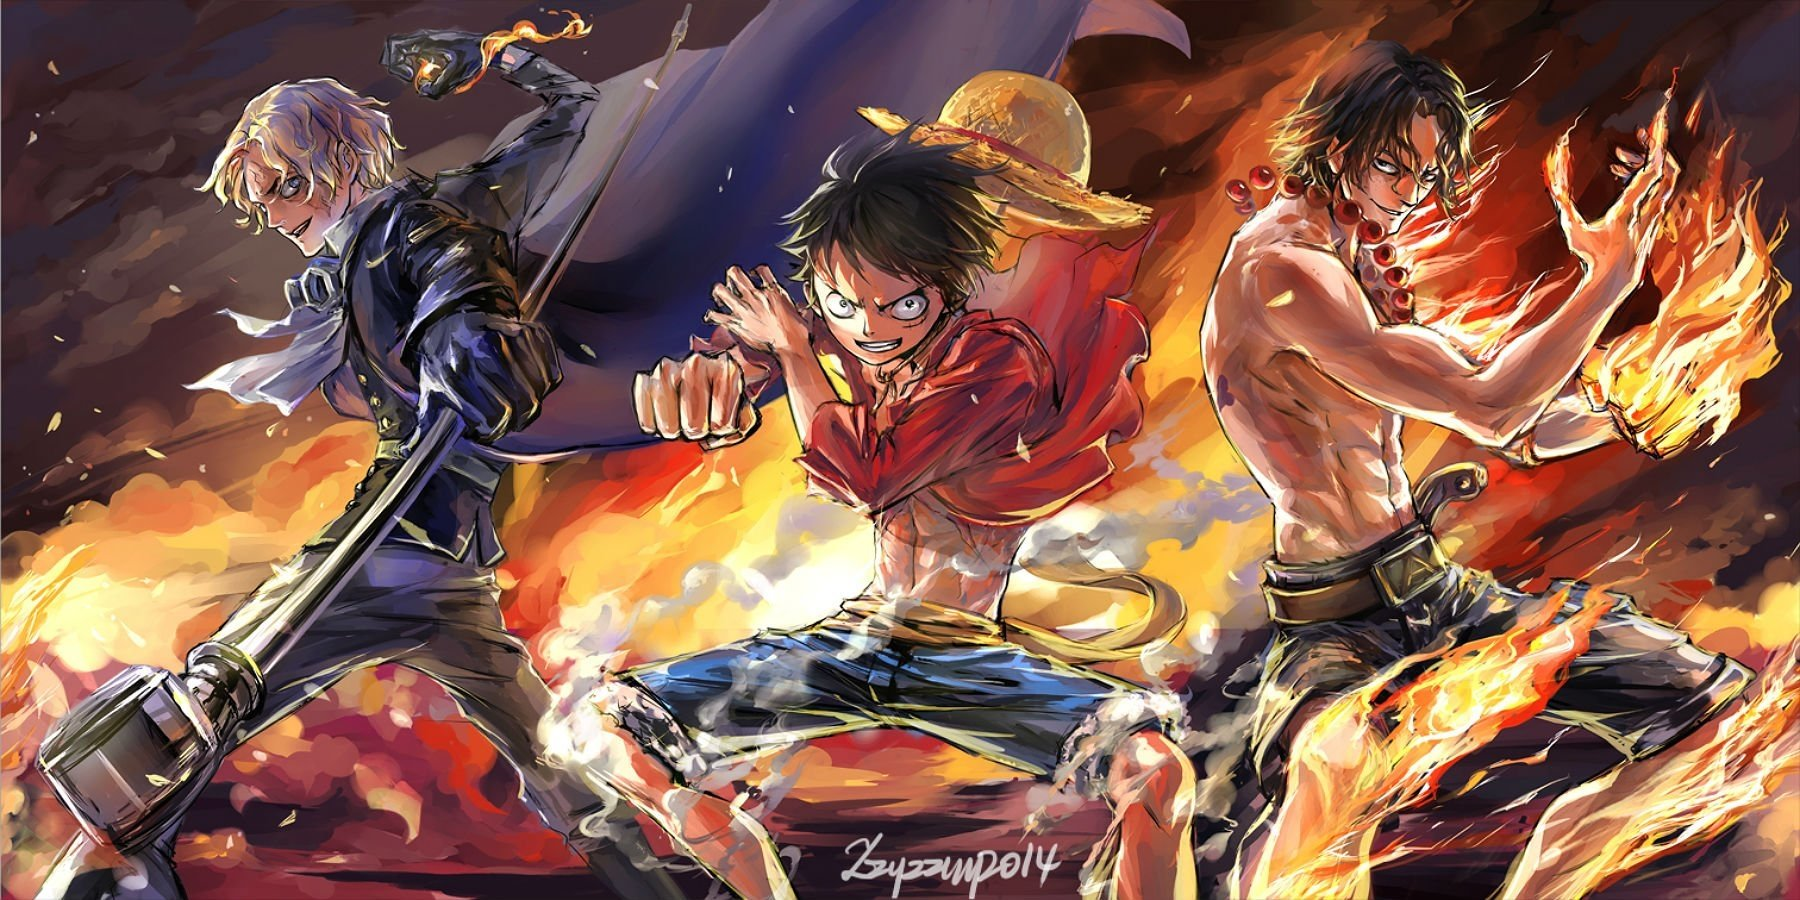 1242x2688 monkey luffy iphone xs max wallpaper, hd anime 4k wallpaper, image, photo and background. 2400 One Piece Hd Wallpapers Background Images